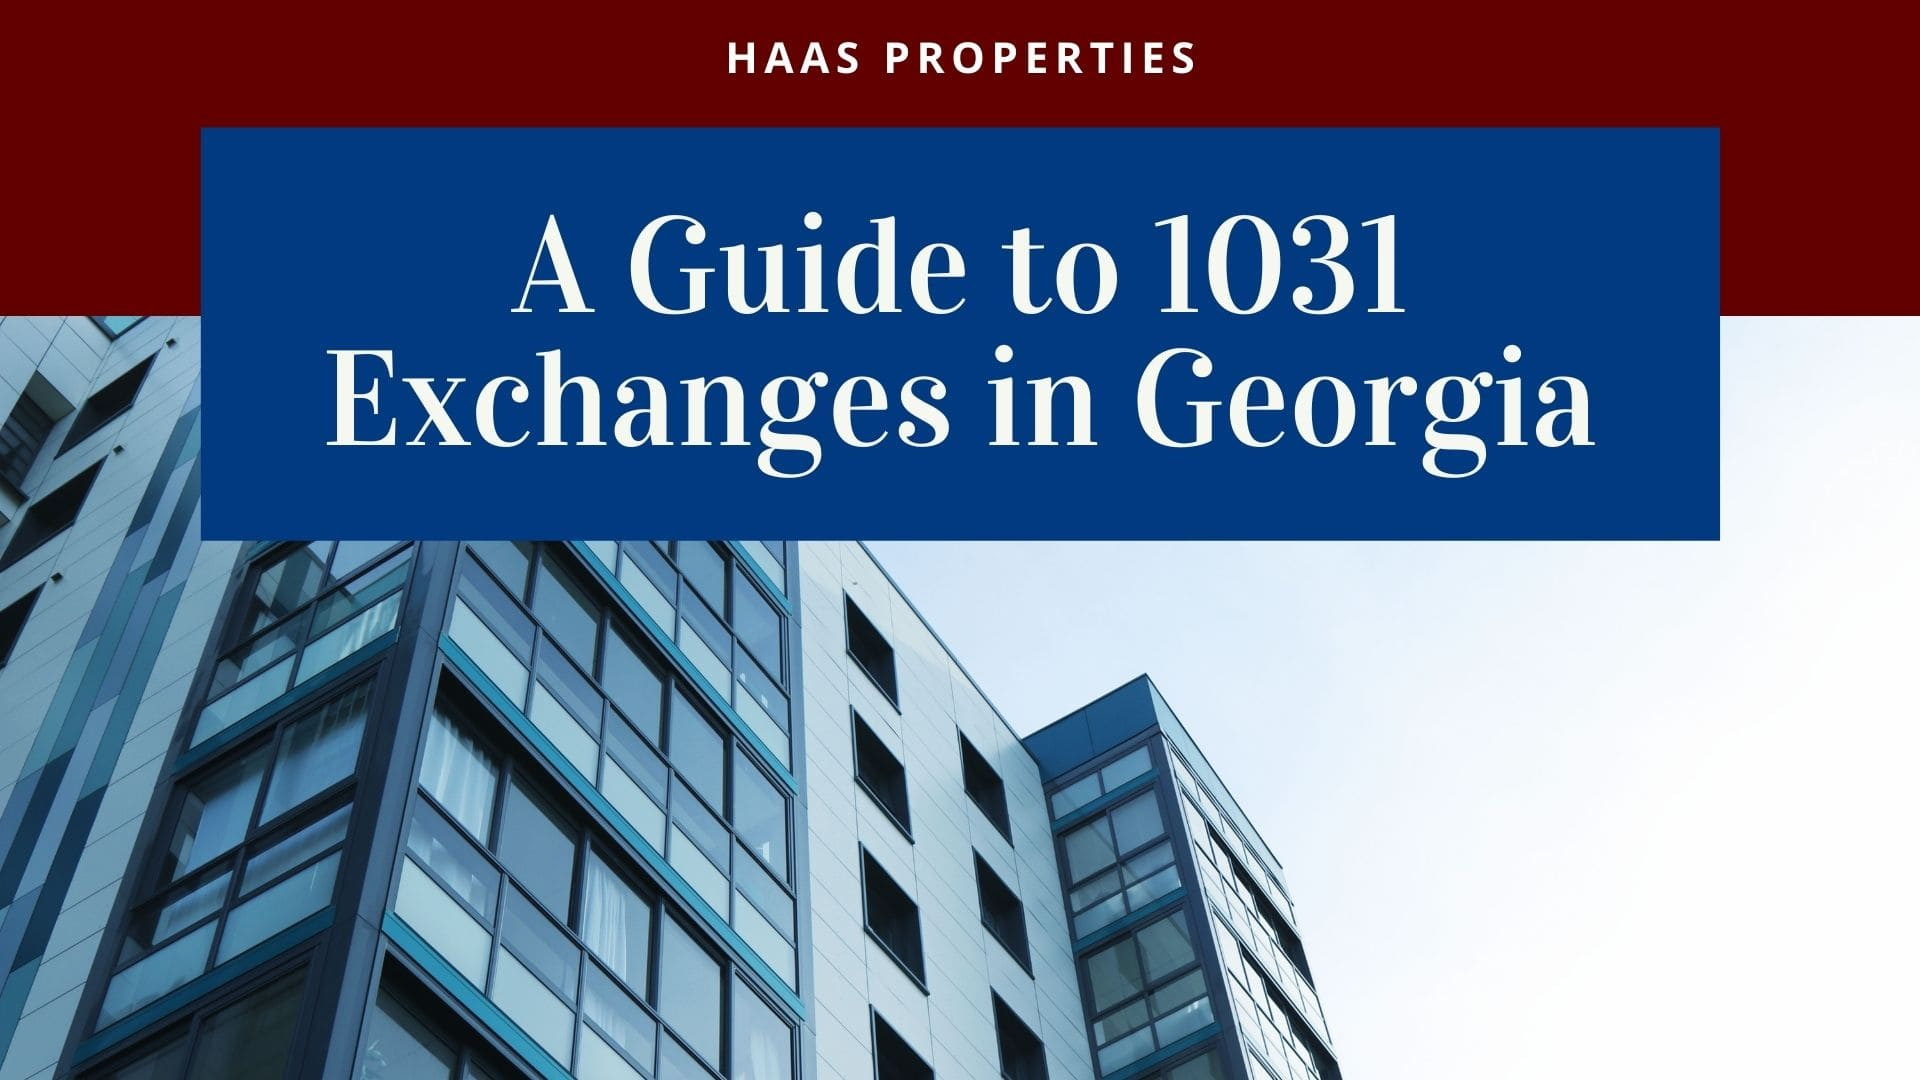 A Guide to 1031 Exchanges in Georgia